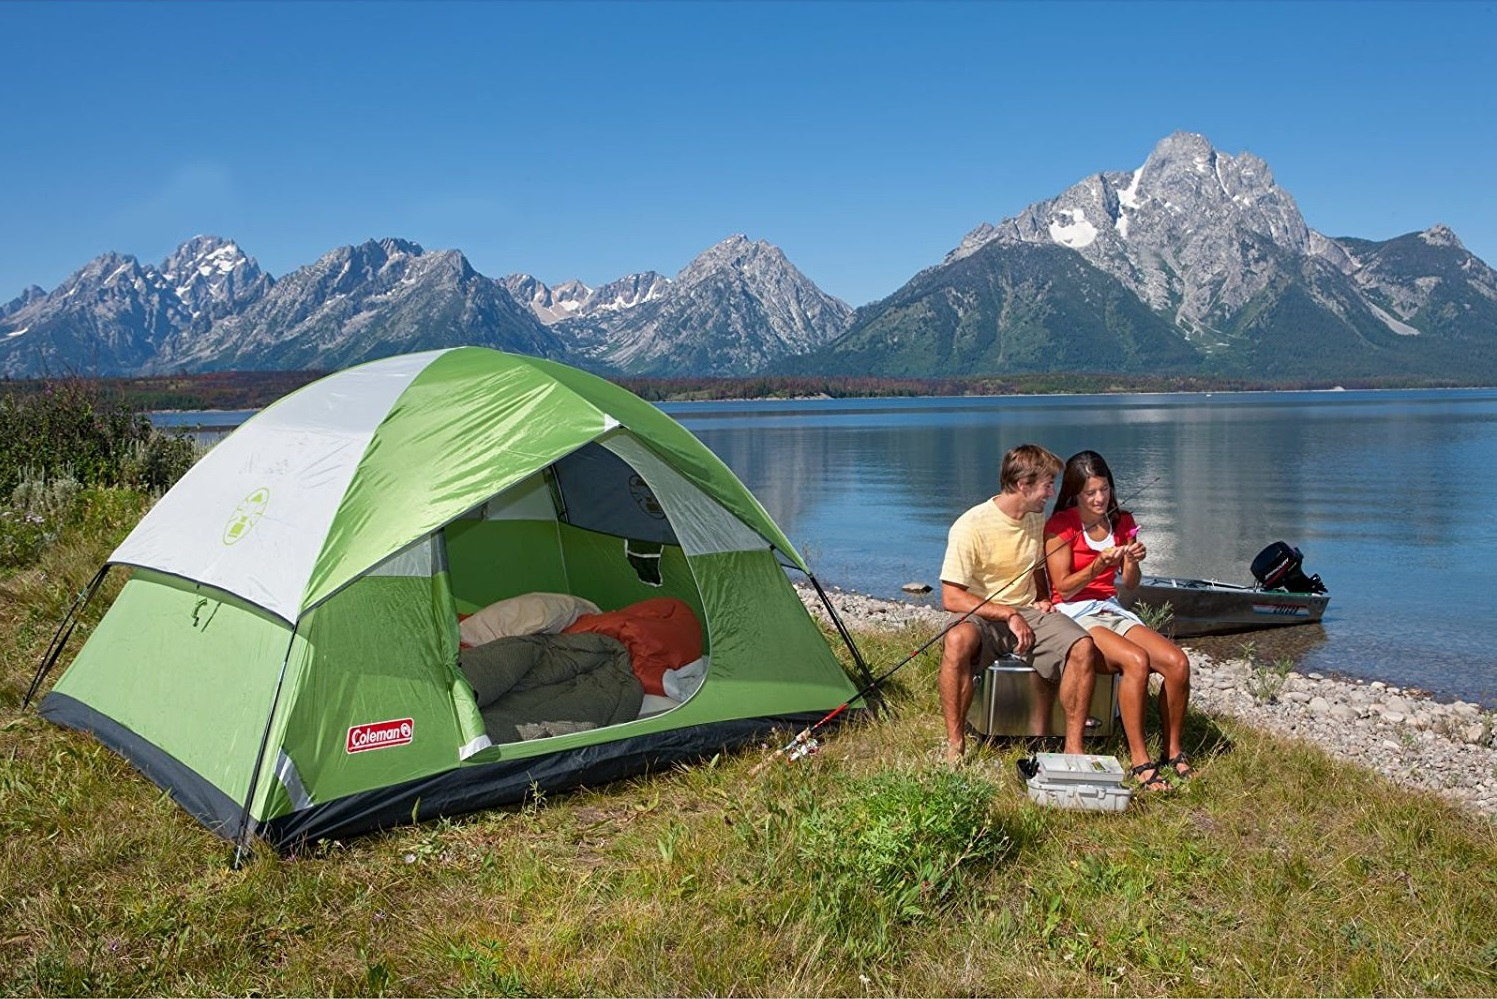 coleman sundome 2 person tent & coleman sundome 2 person tent | Camp Like a Champion